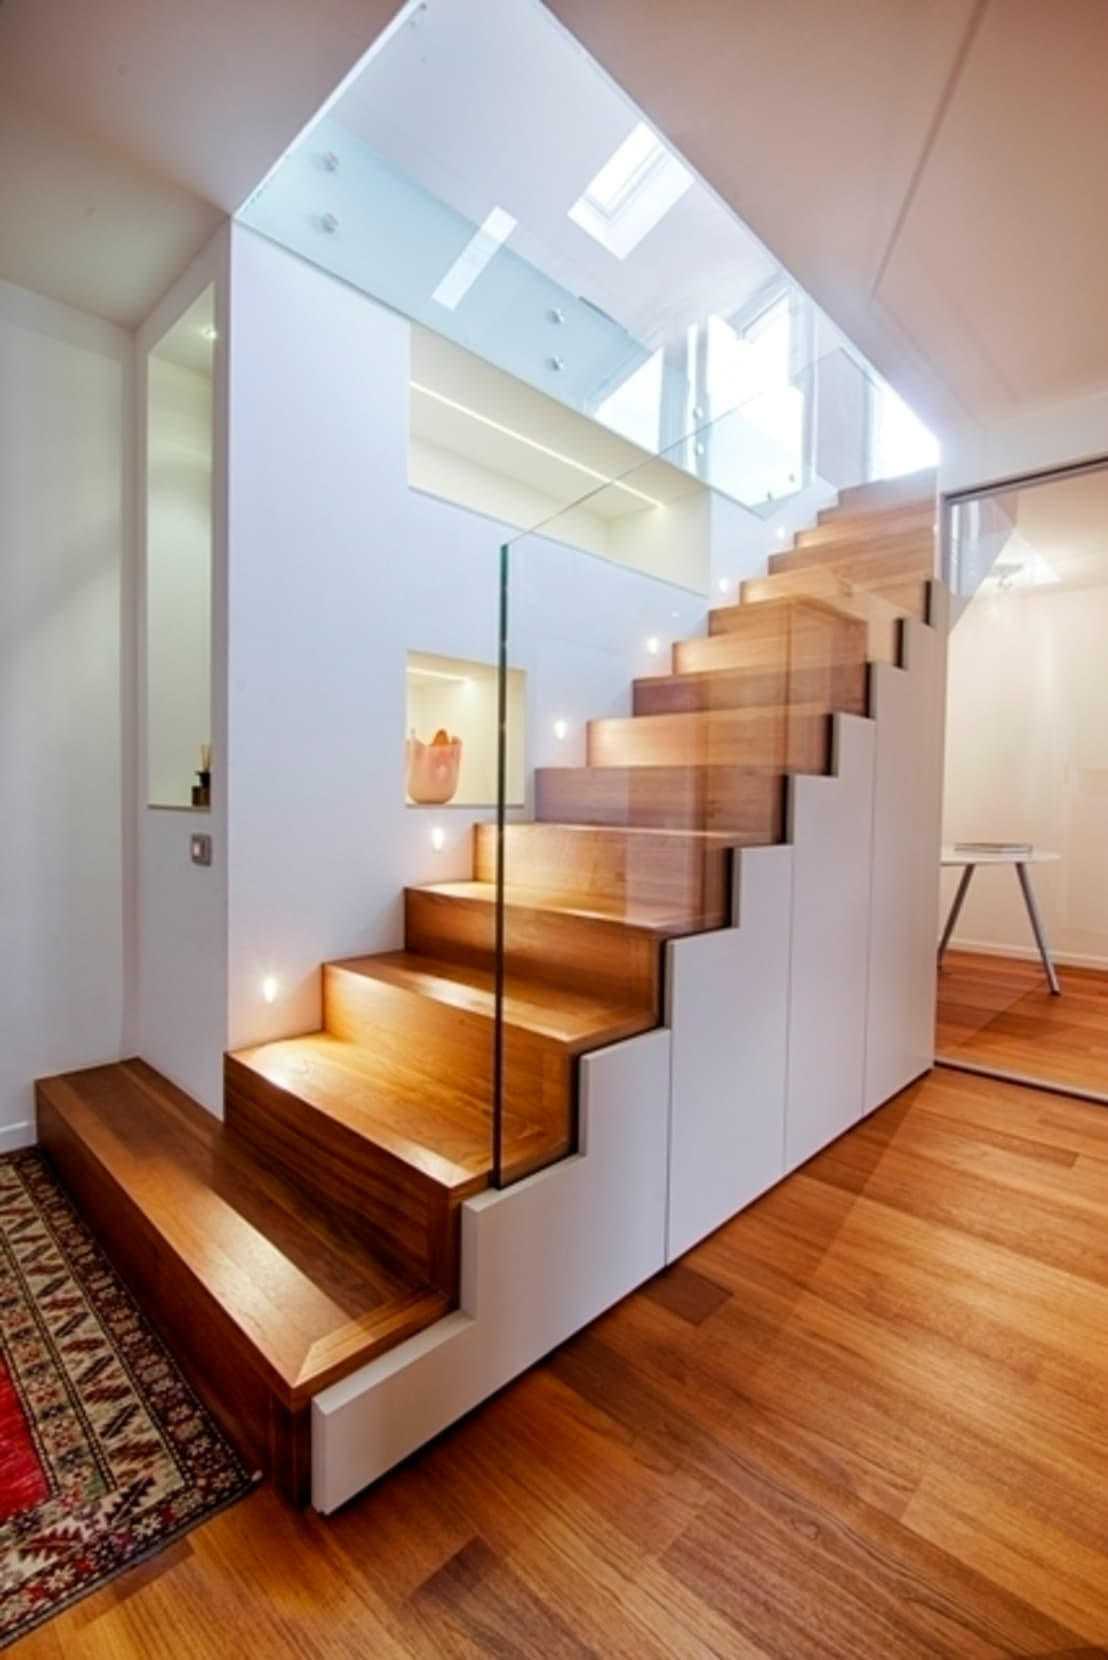 36 Beautiful Modern Nails With Bombastic Design: 36 Beautiful Images Of Modern Staircases At Home